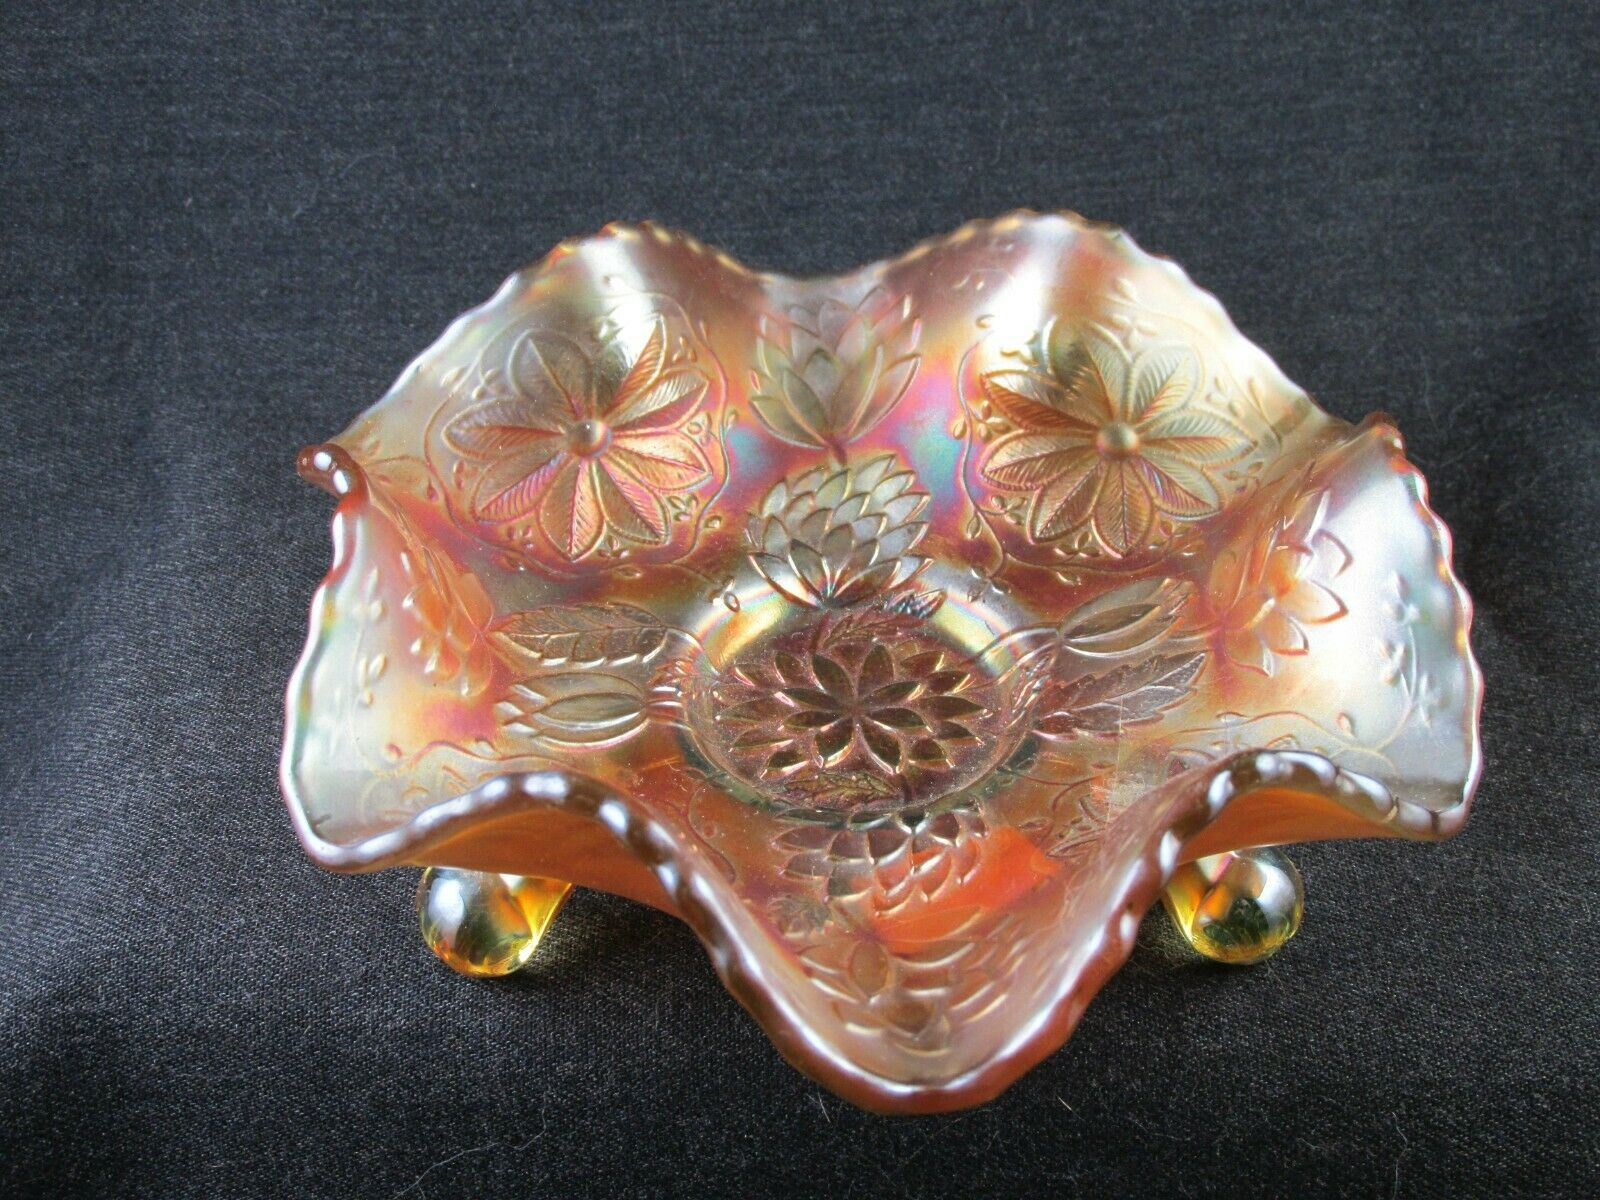 CARNIVAL GLASS FENTON VASELINE TWO FLOWERS 6 INCH FOOTED BOWL 1910S GLOWS CANARY - $31.00